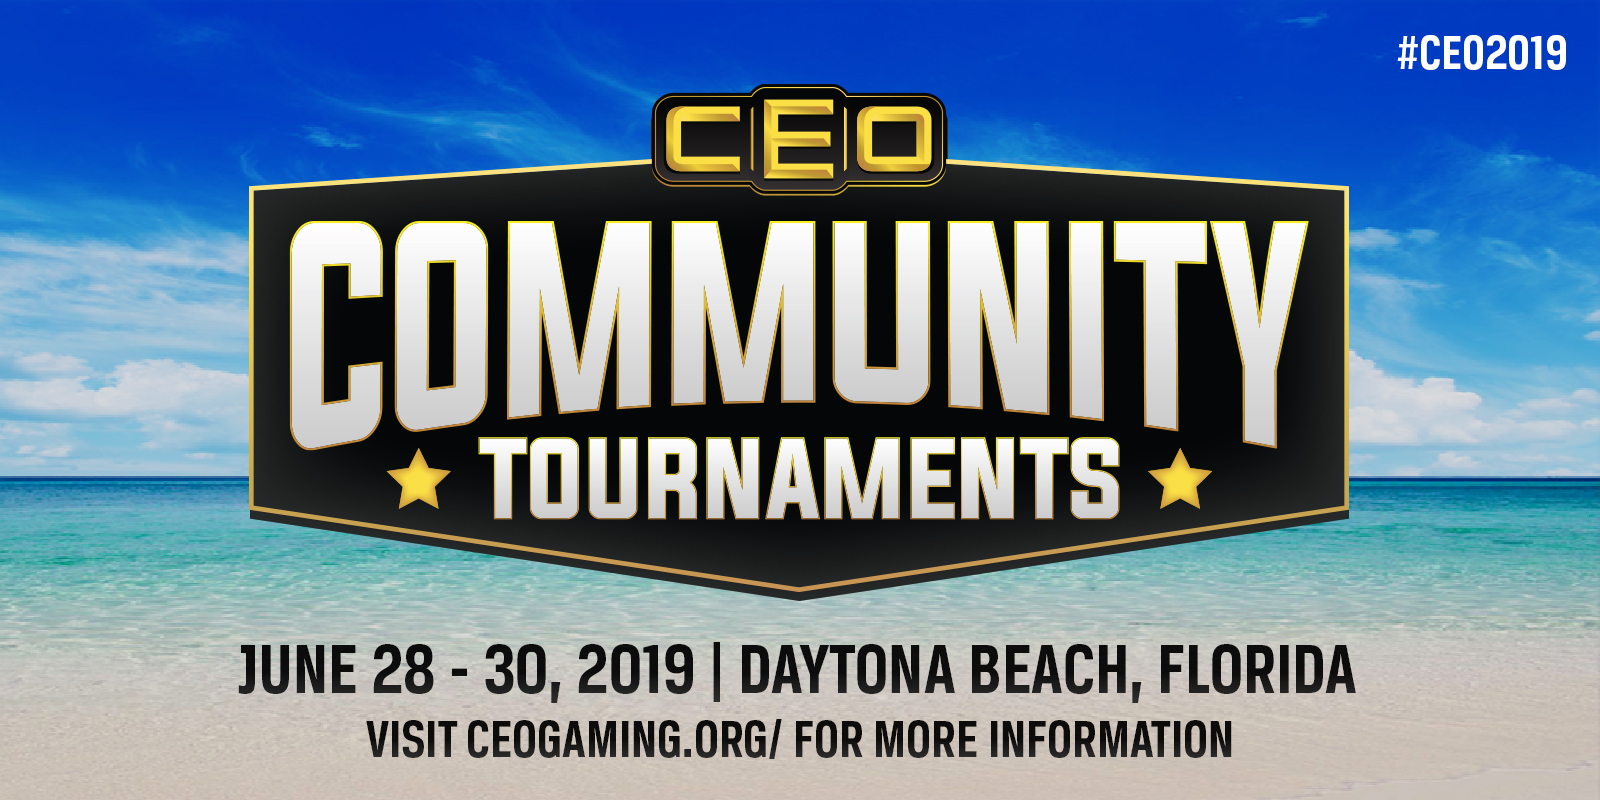 CEO 2019 Side Events - CEO